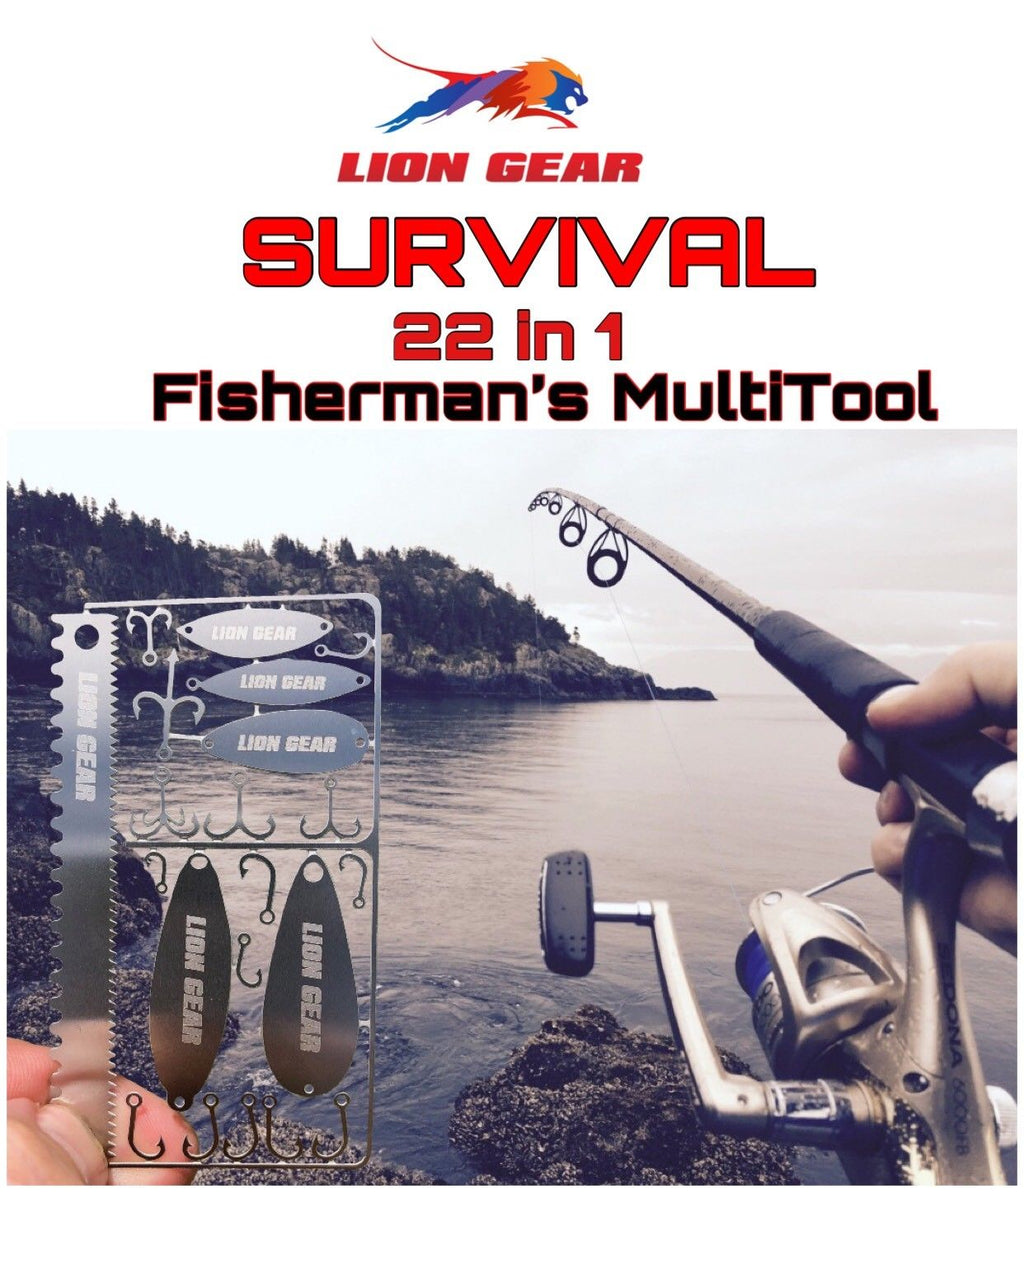 Fisherman's 22-1 Survival Hunting Card Fishing Tool Set Hooks Spoons Lures - Outback Tactical